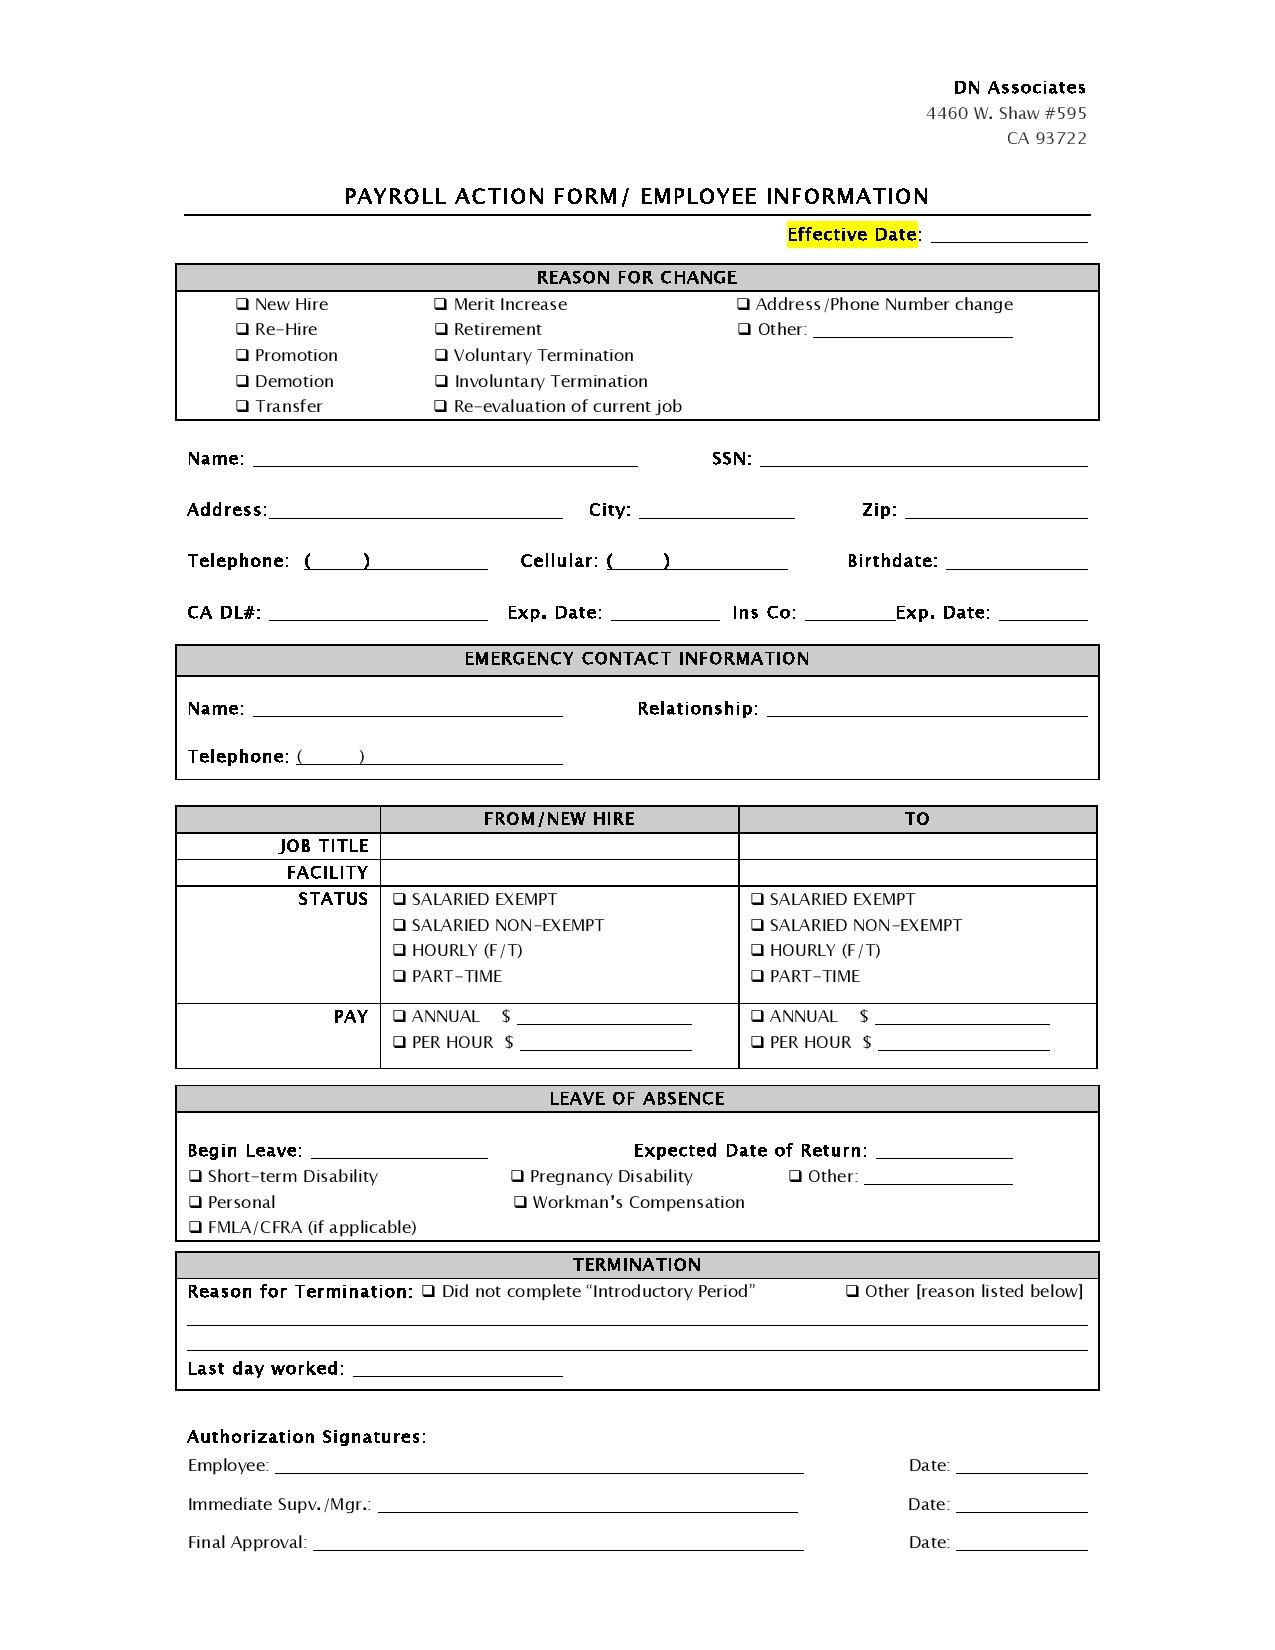 payroll action form employee information page 001